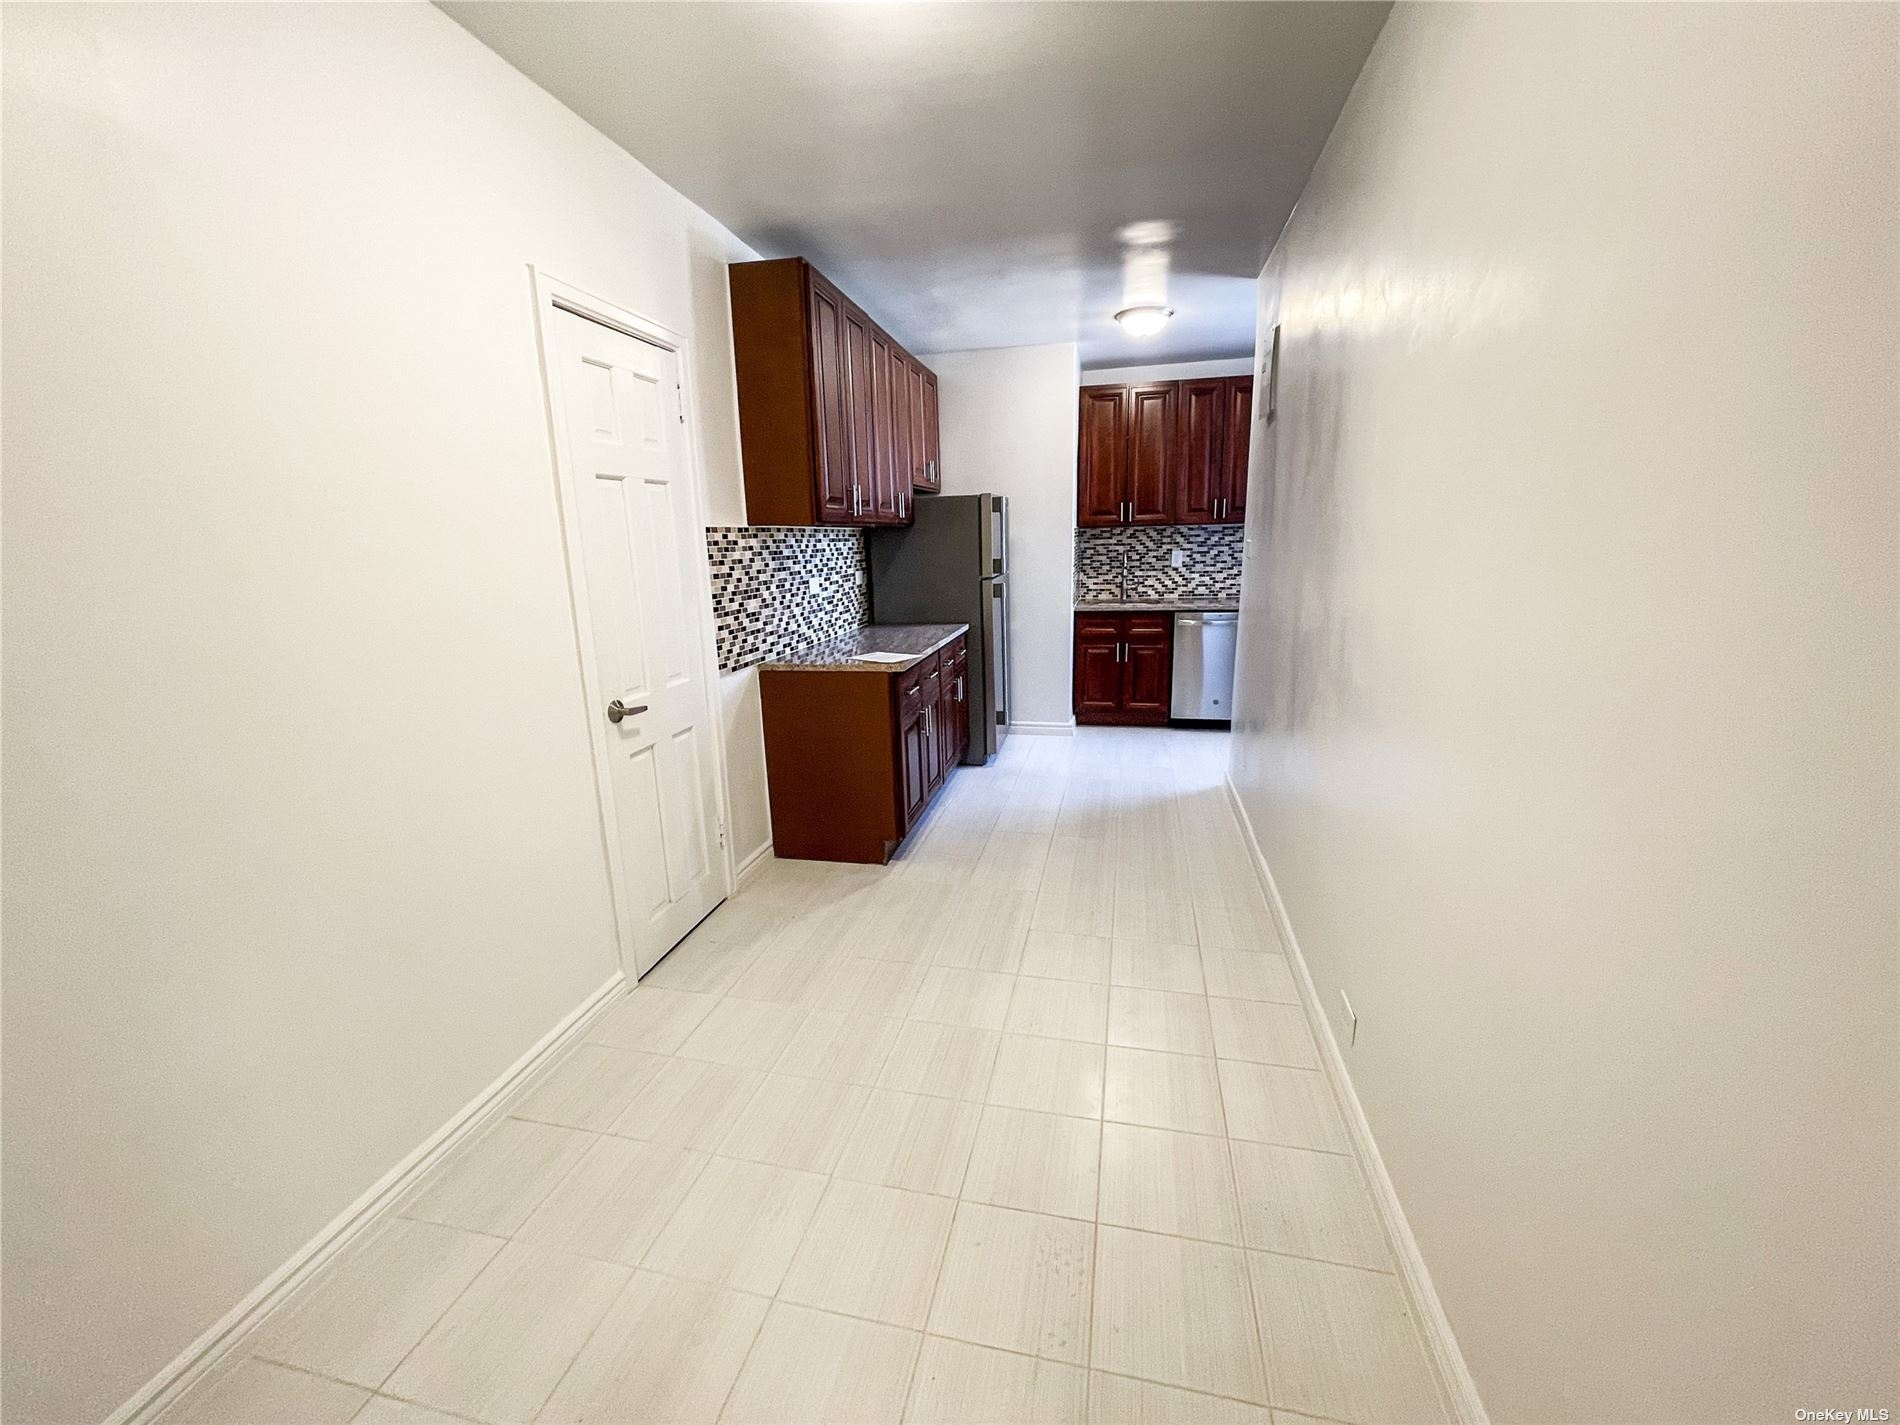 Photo of 110-34 73 Road #4H, Forest Hills, NY 11375 (MLS # 3302787)